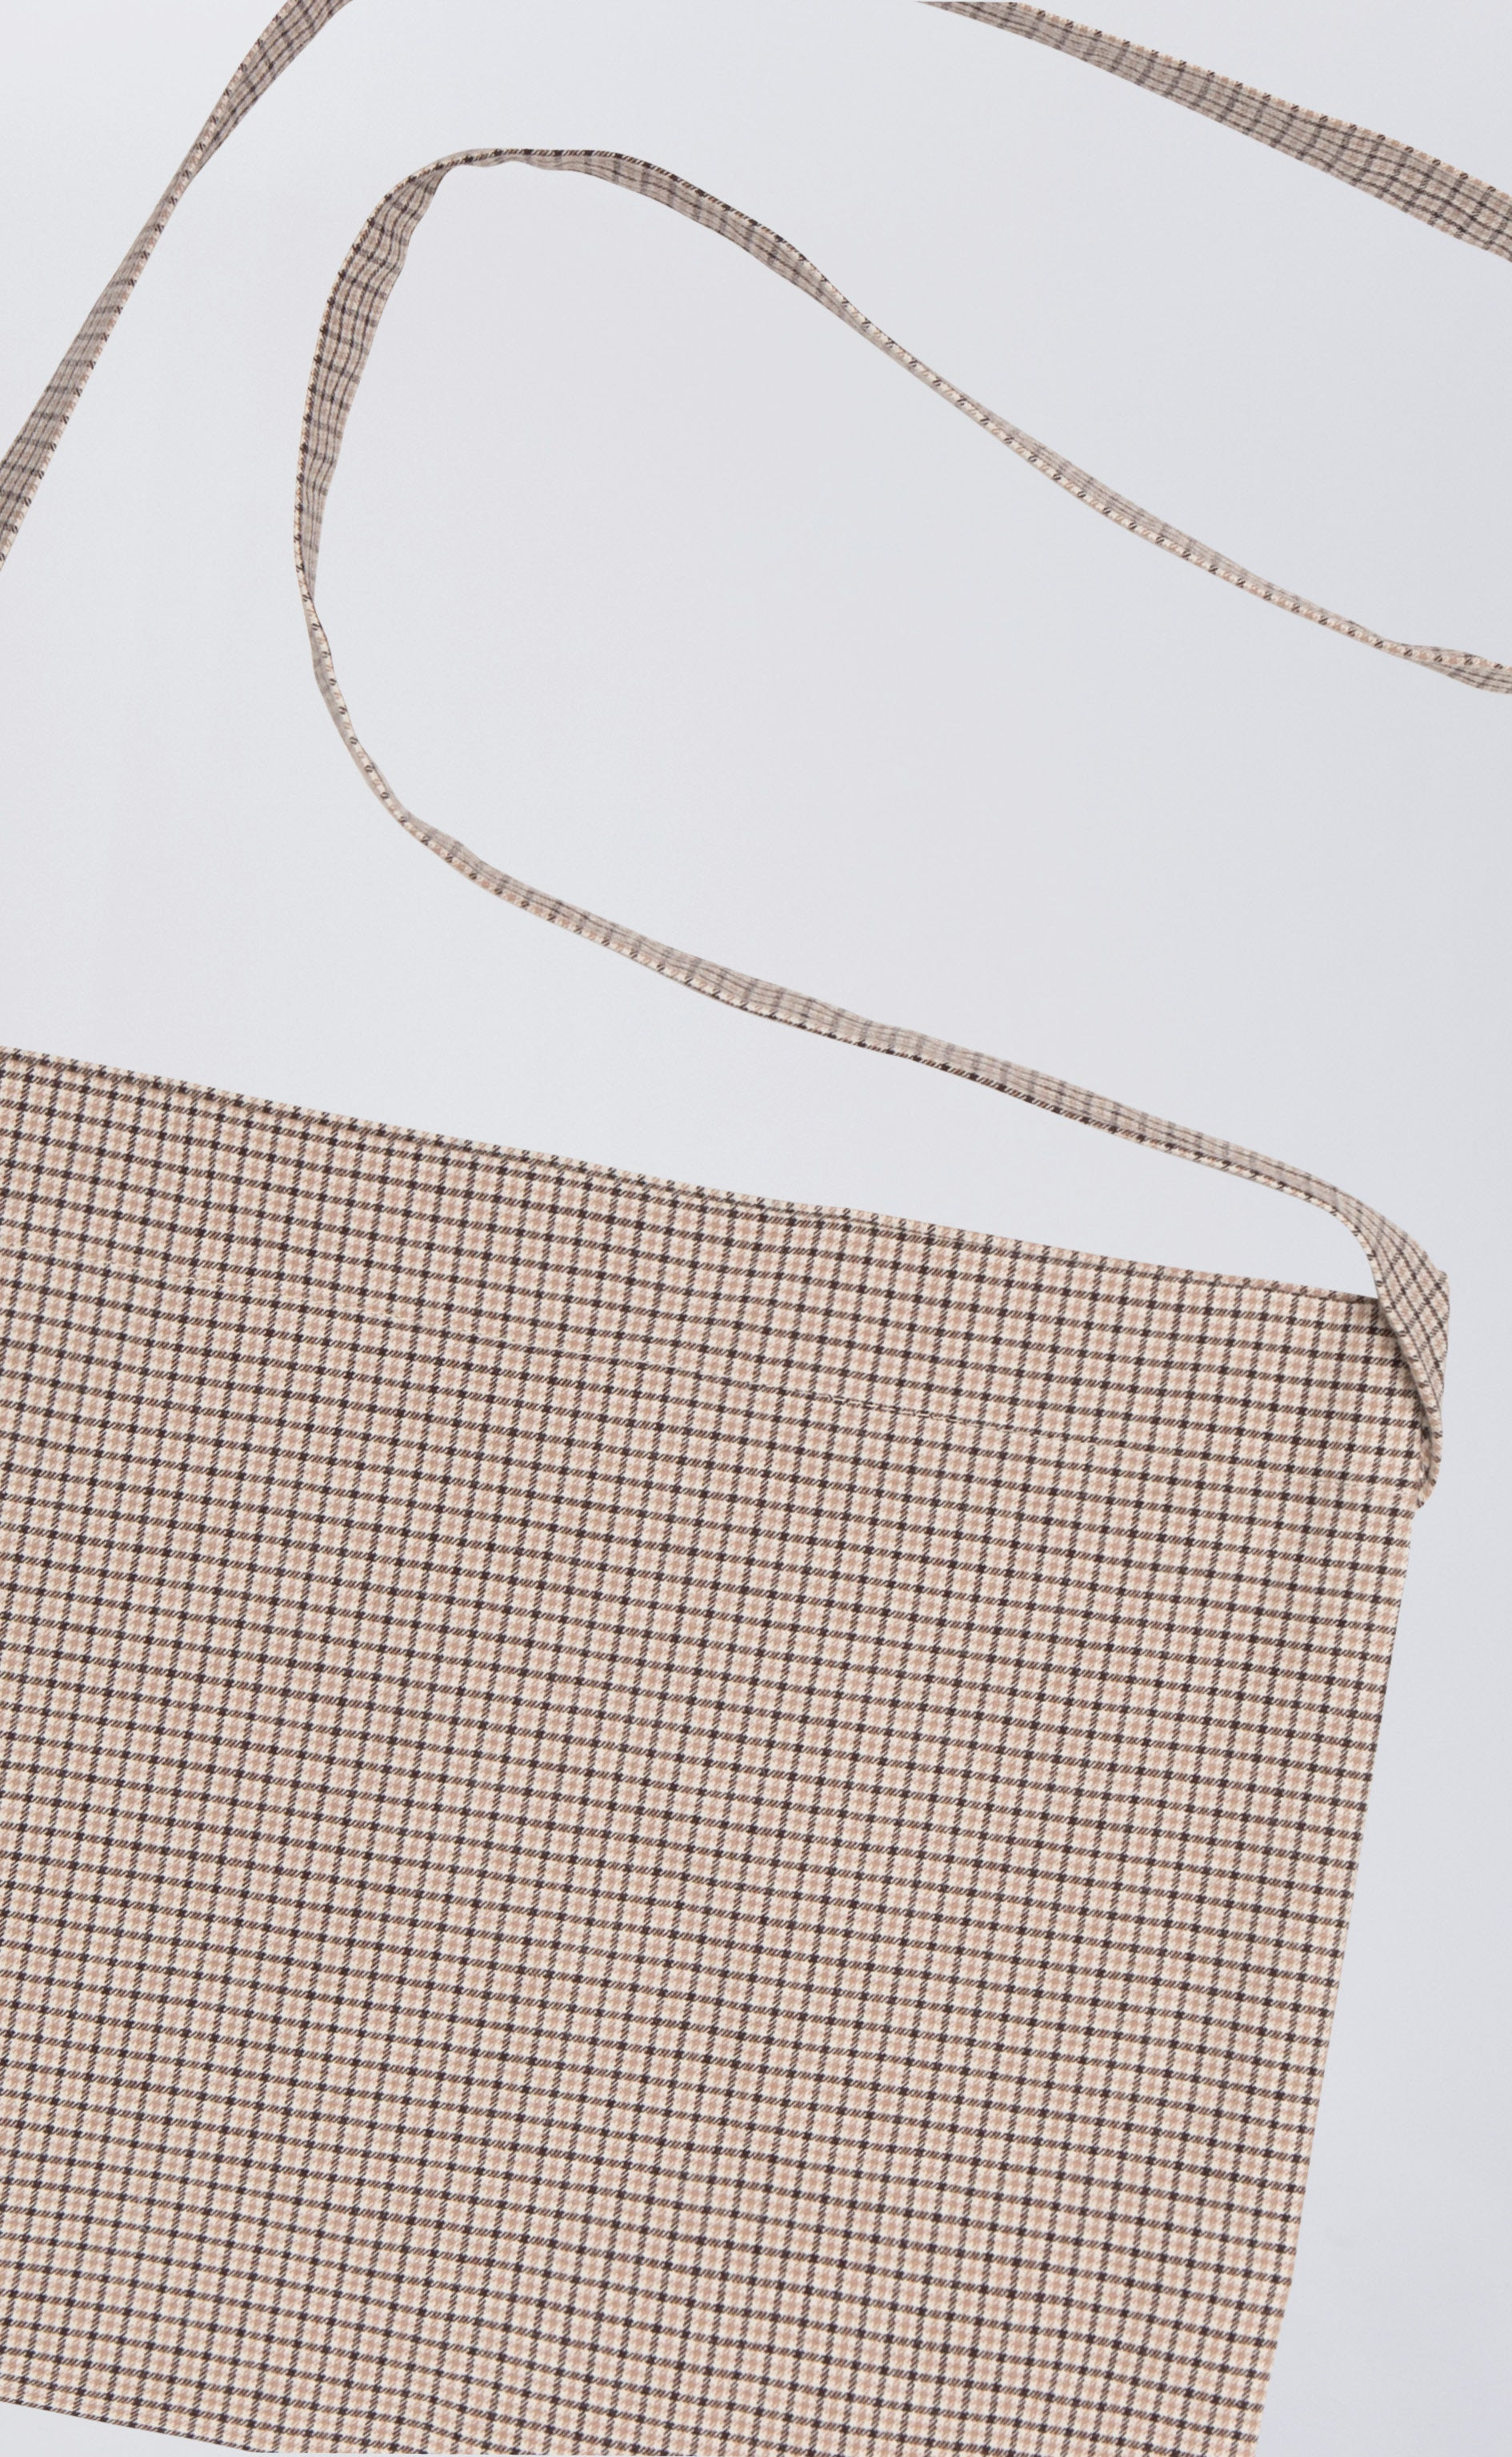 MINI TOTE - BEIGE CHECK